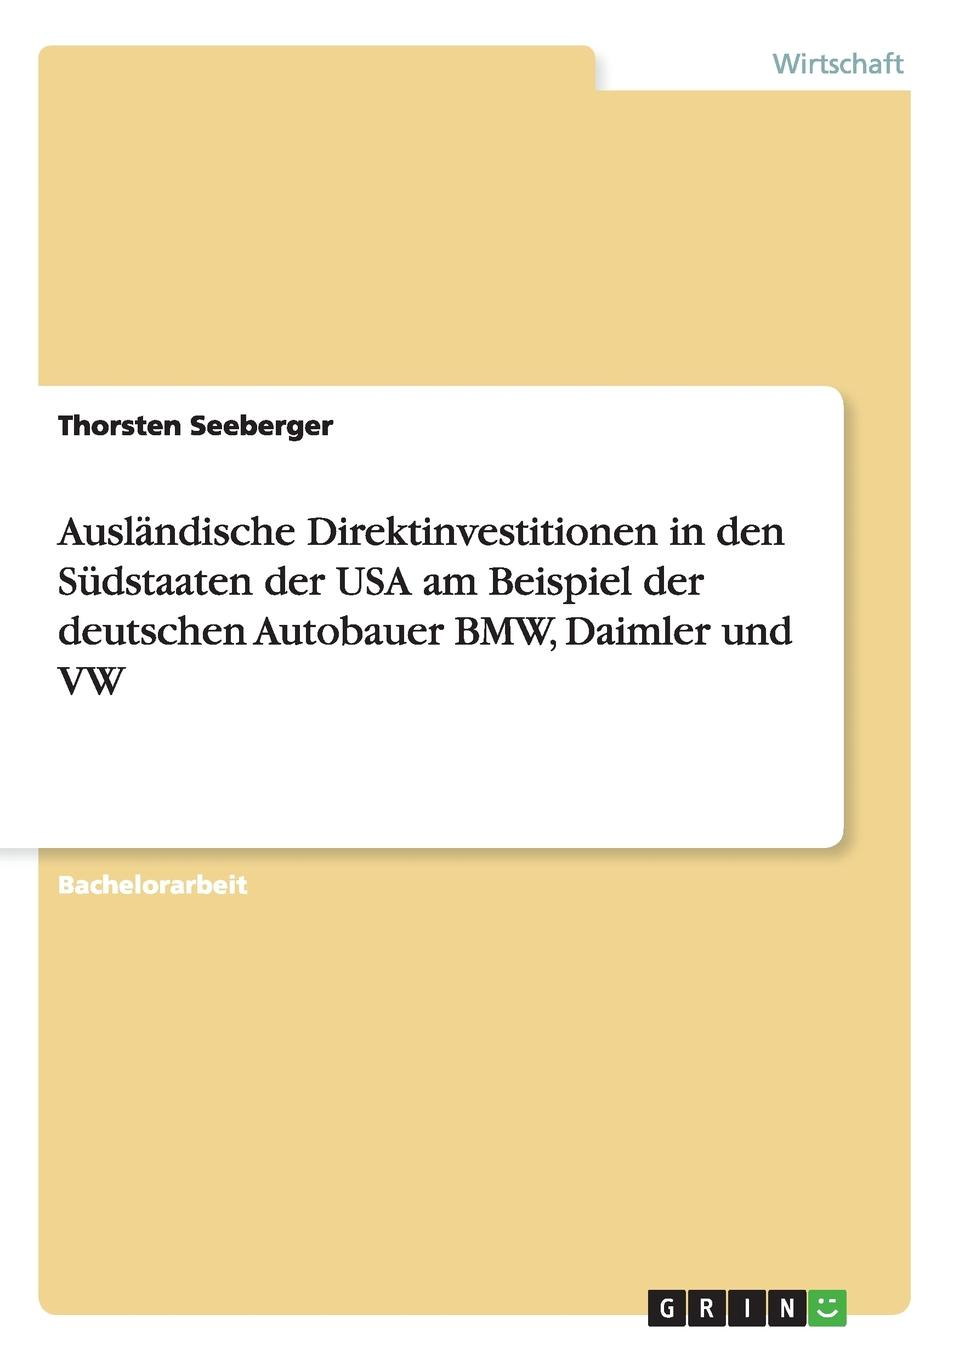 Thorsten Seeberger Auslandische Direktinvestitionen in Den Sudstaaten Der USA Am Beispiel Der Deutschen Autobauer BMW, Daimler Und VW capital budgeting for foreign direct investment bangladesh overview